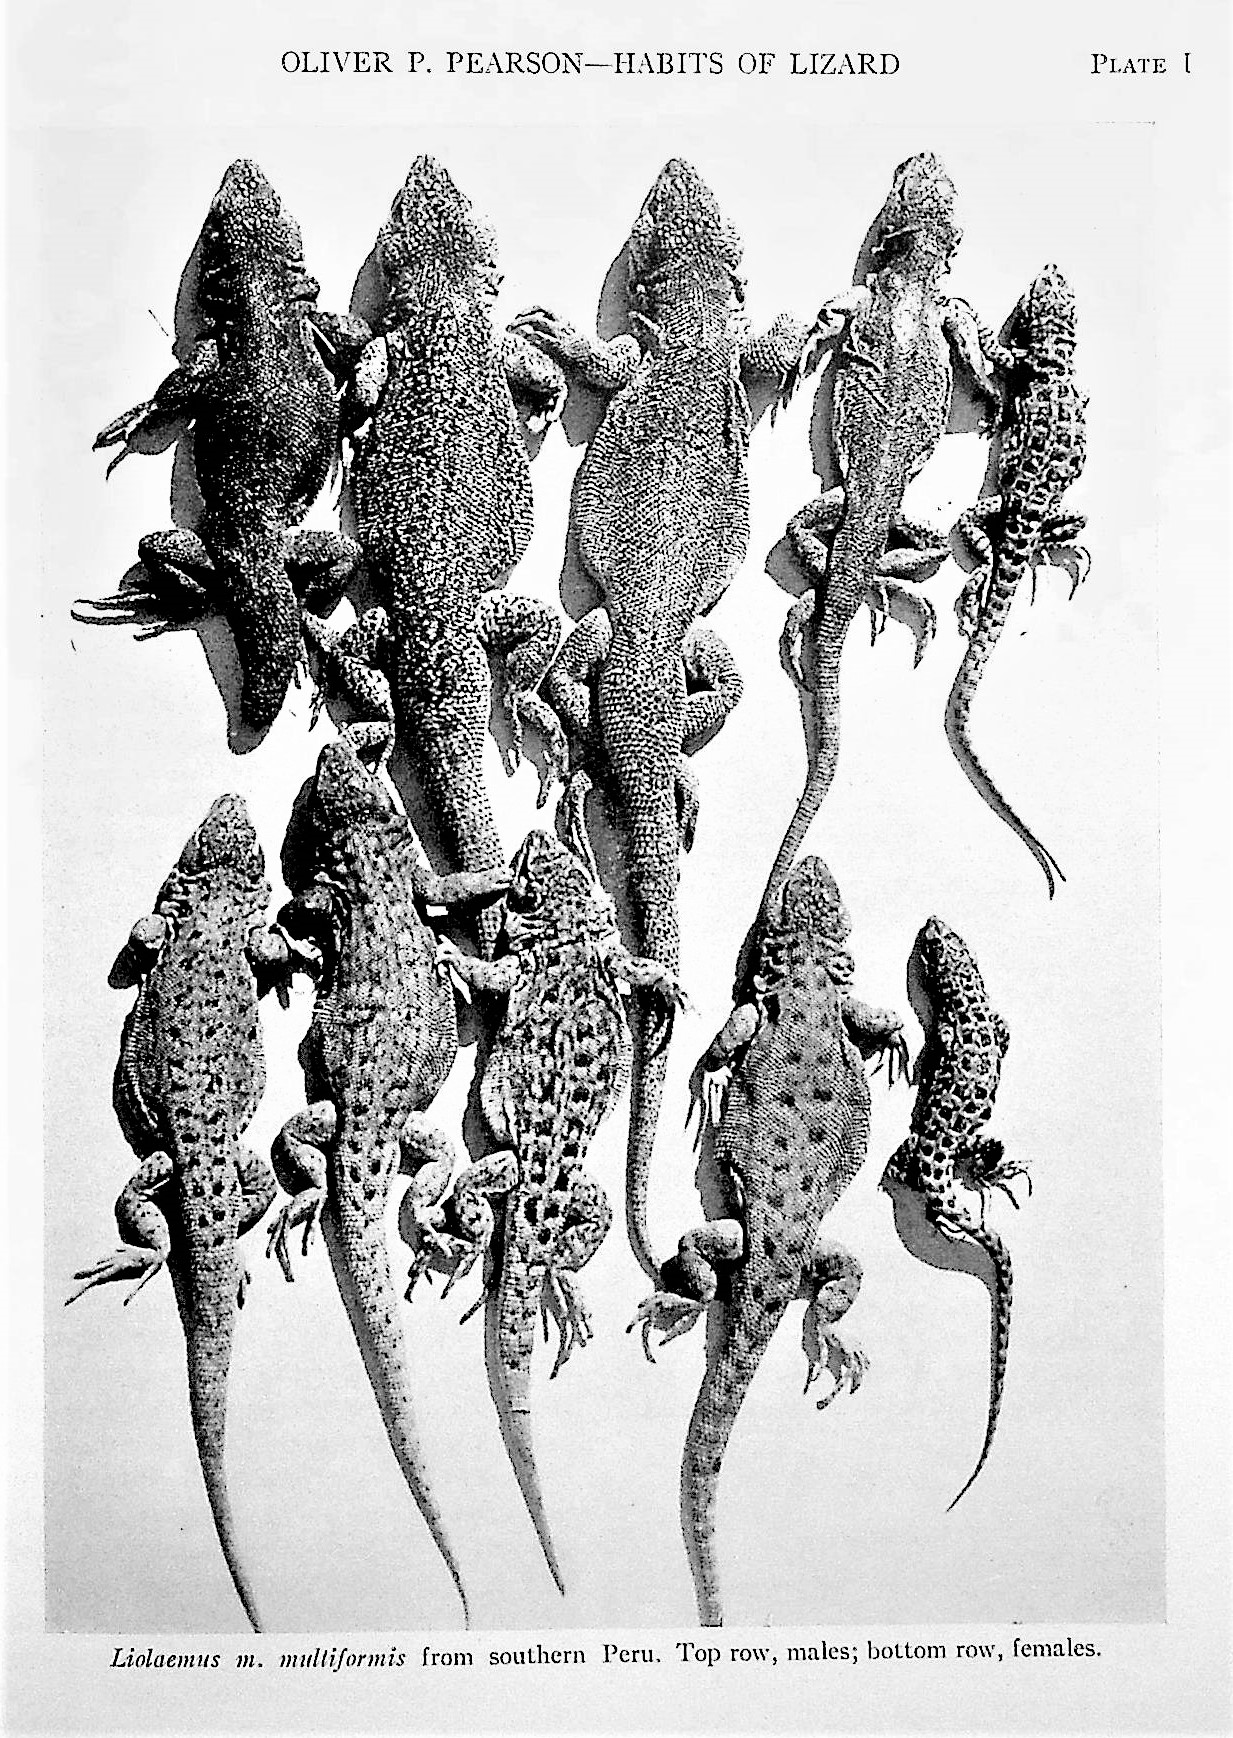 Image for Collection of 36 offprints by legendary ecologist and Director of the Museum of Vertebrate Zoology, UC Berkeley